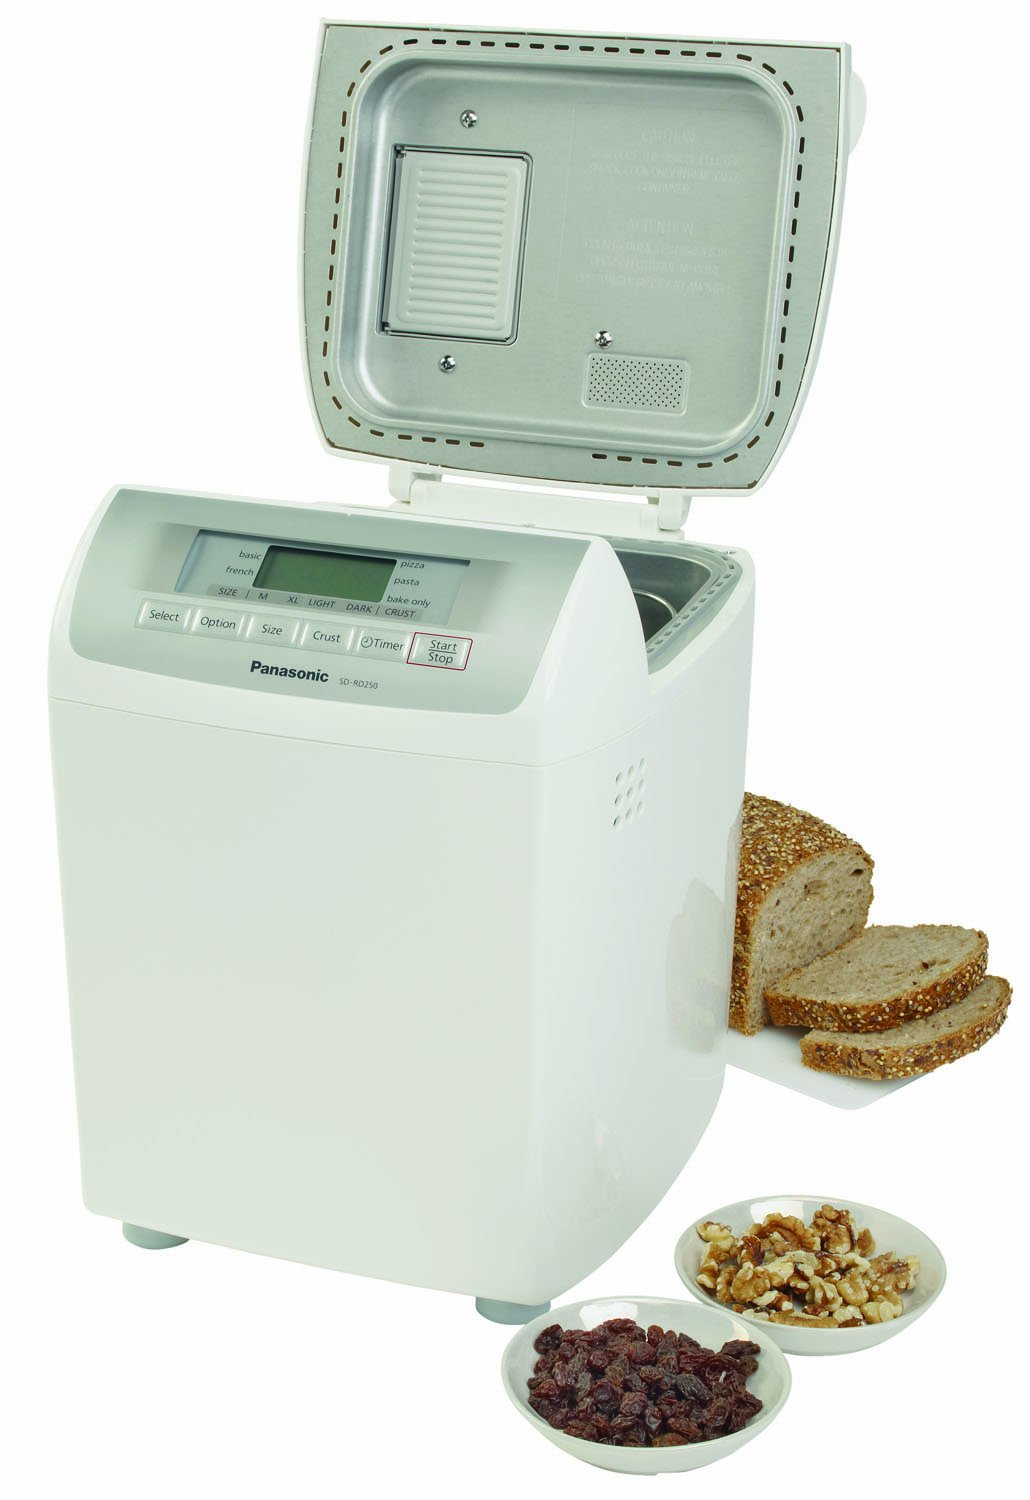 Panasonic SD-RD250 Bread Maker with Automatic Fruit & Nut Dispenser